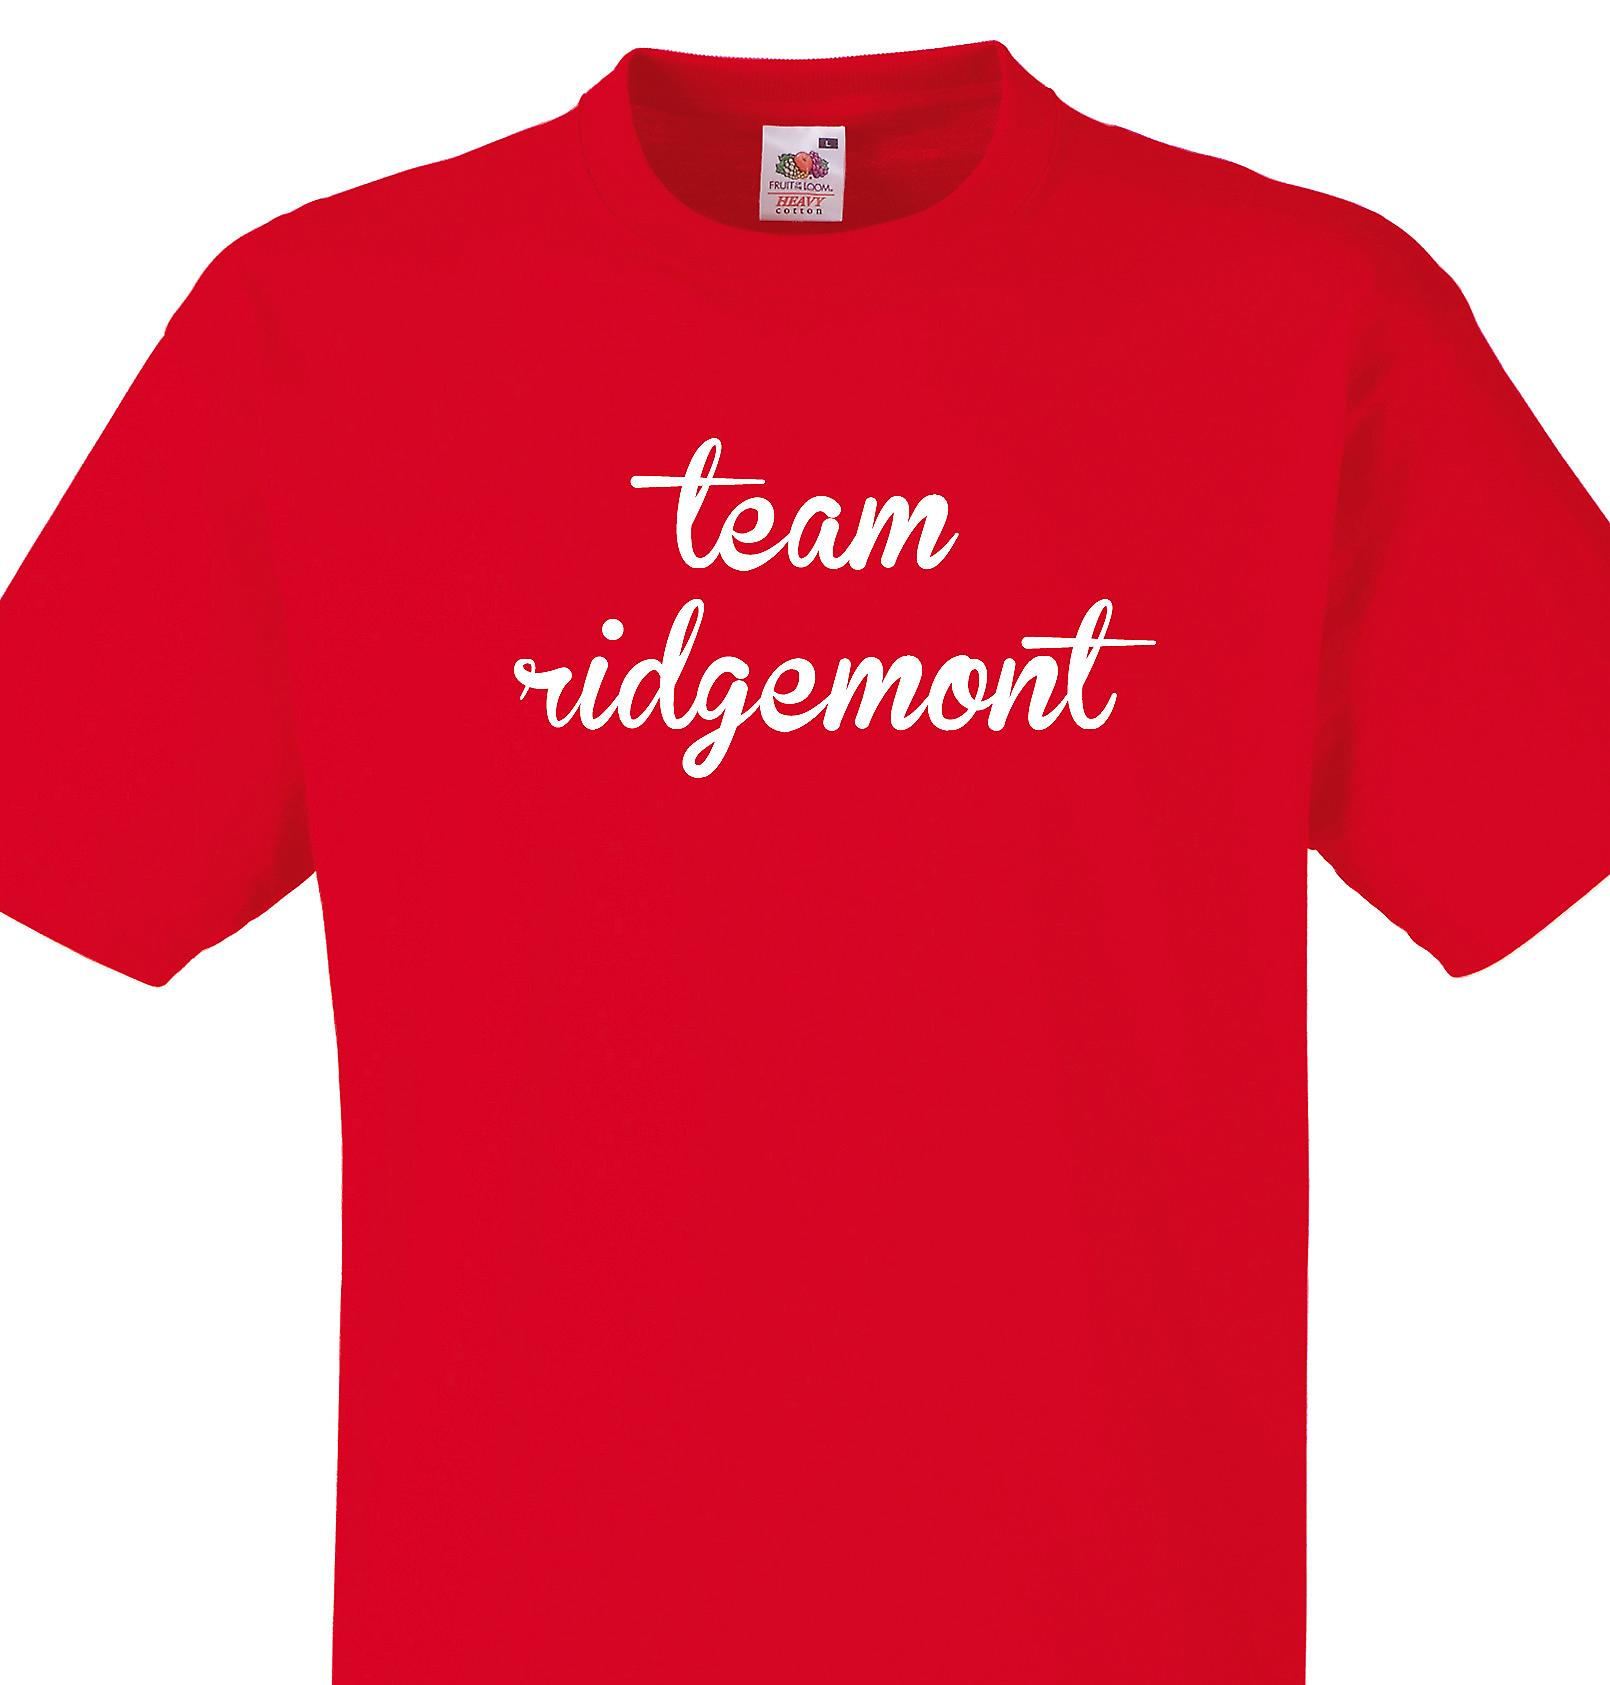 Team Ridgemont Red T shirt